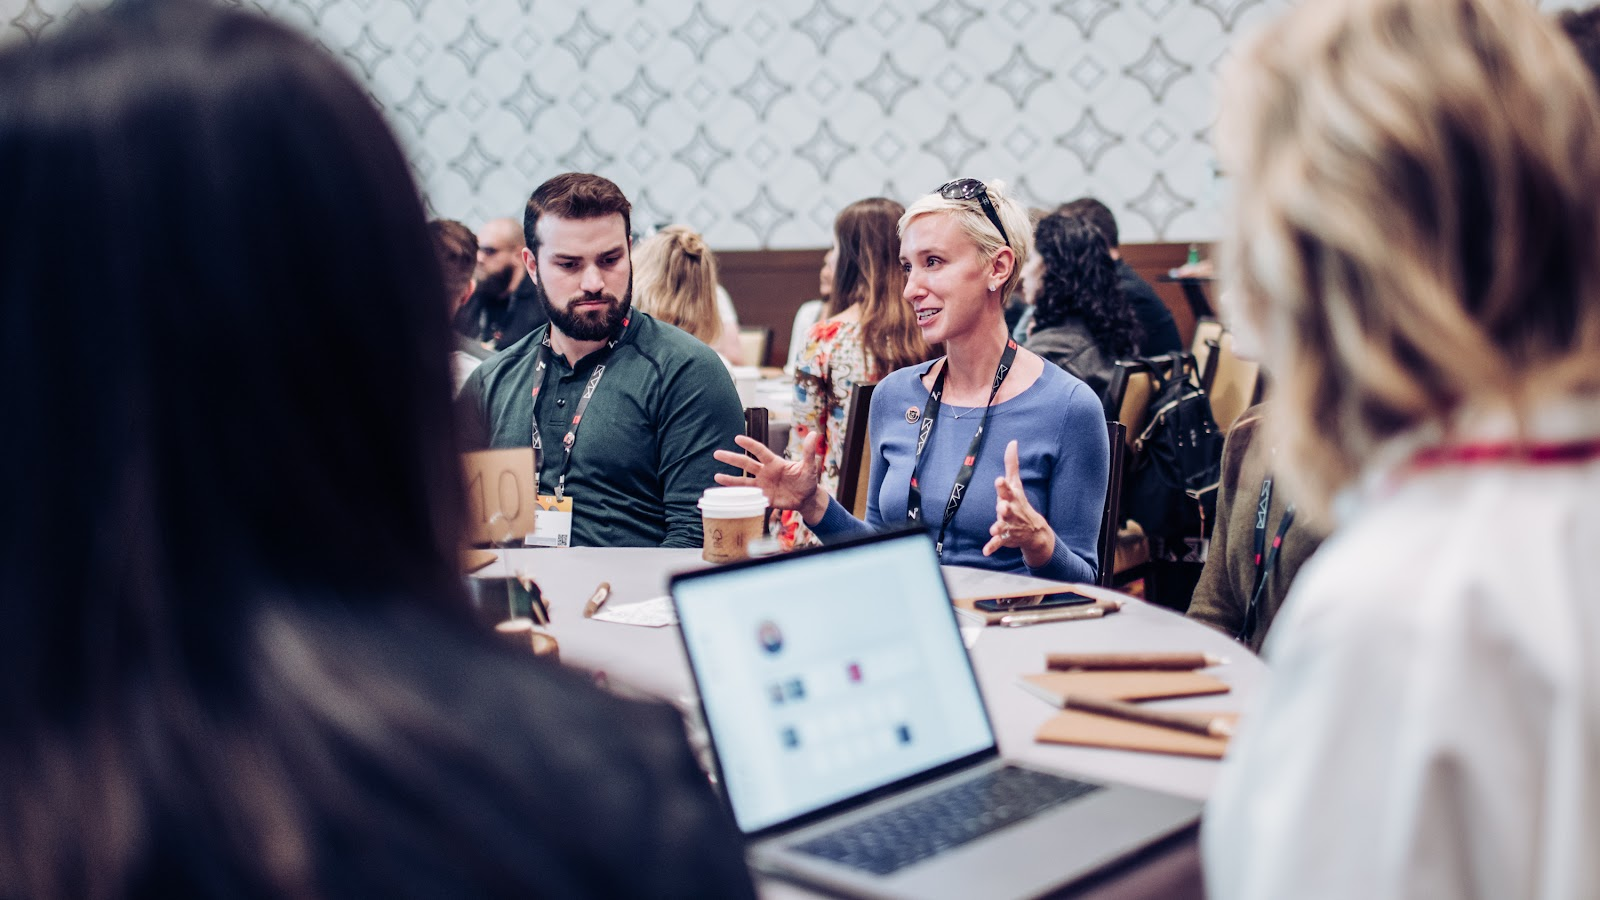 Attendees at Adobe MAX 2019's XD Summit discuss developments and challenges facing the UX industry.